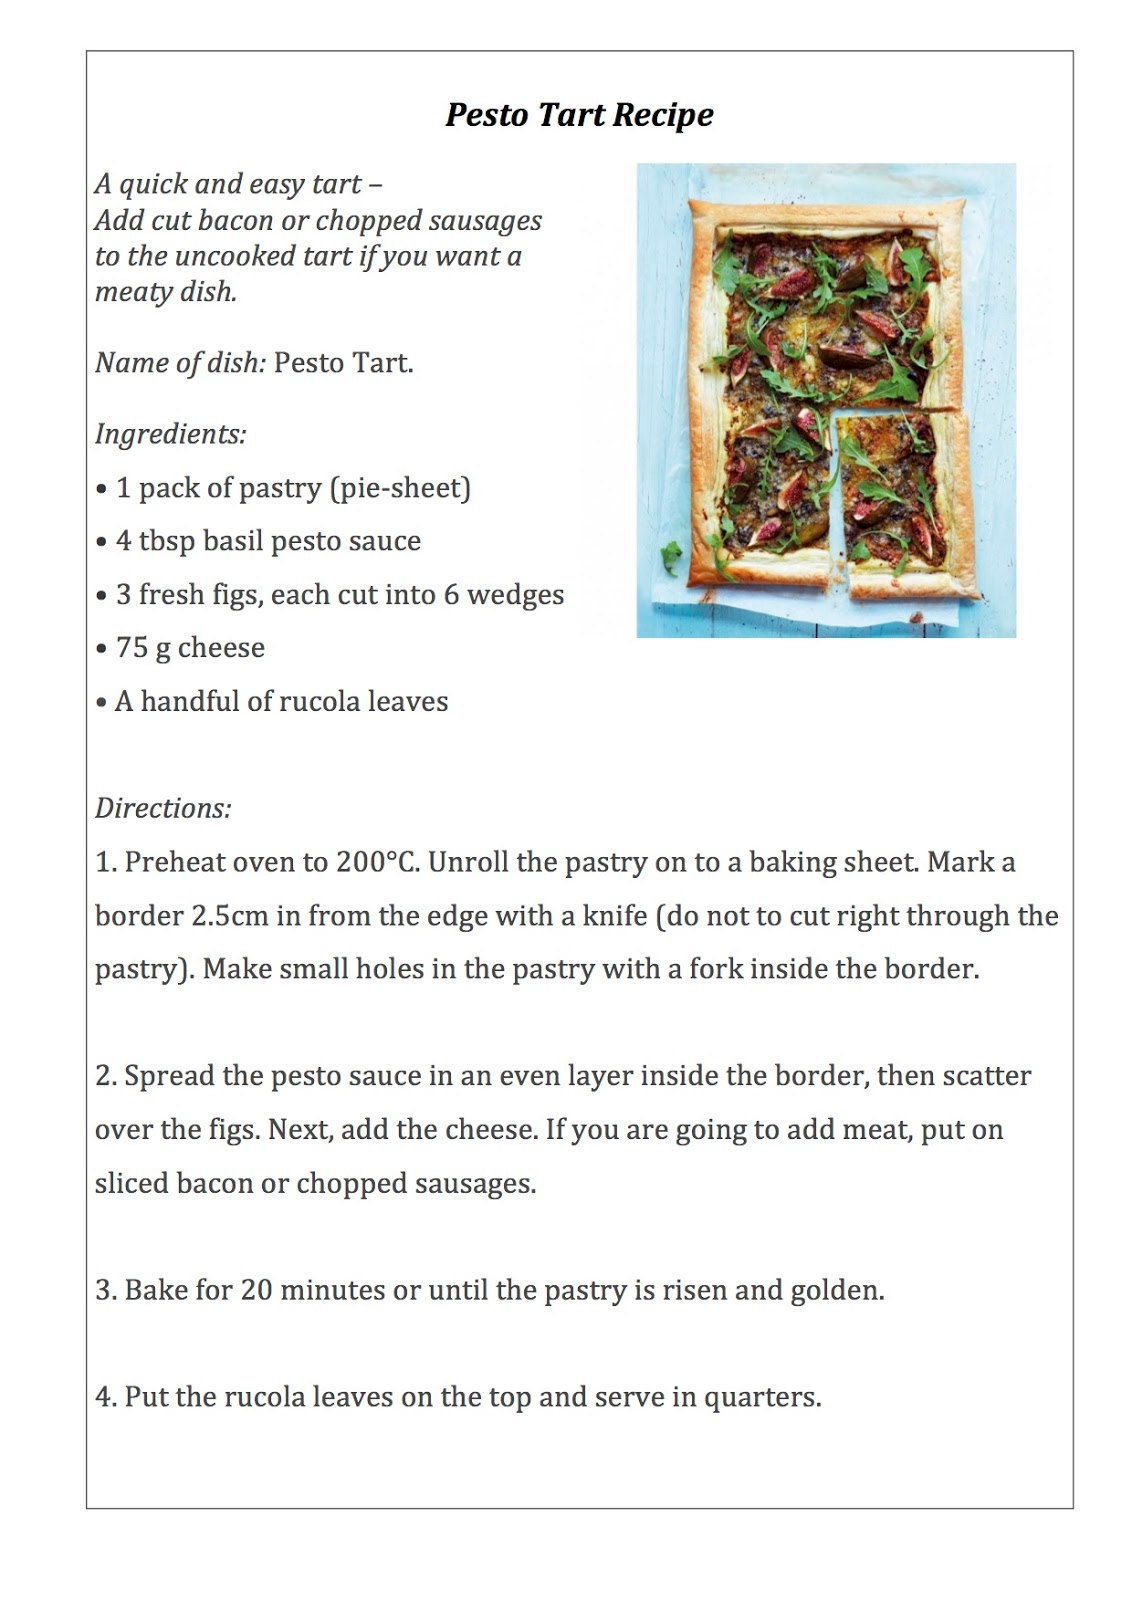 worksheet Reading A Recipe Worksheet first year english reading read the recipe step 2 print complete worksheet